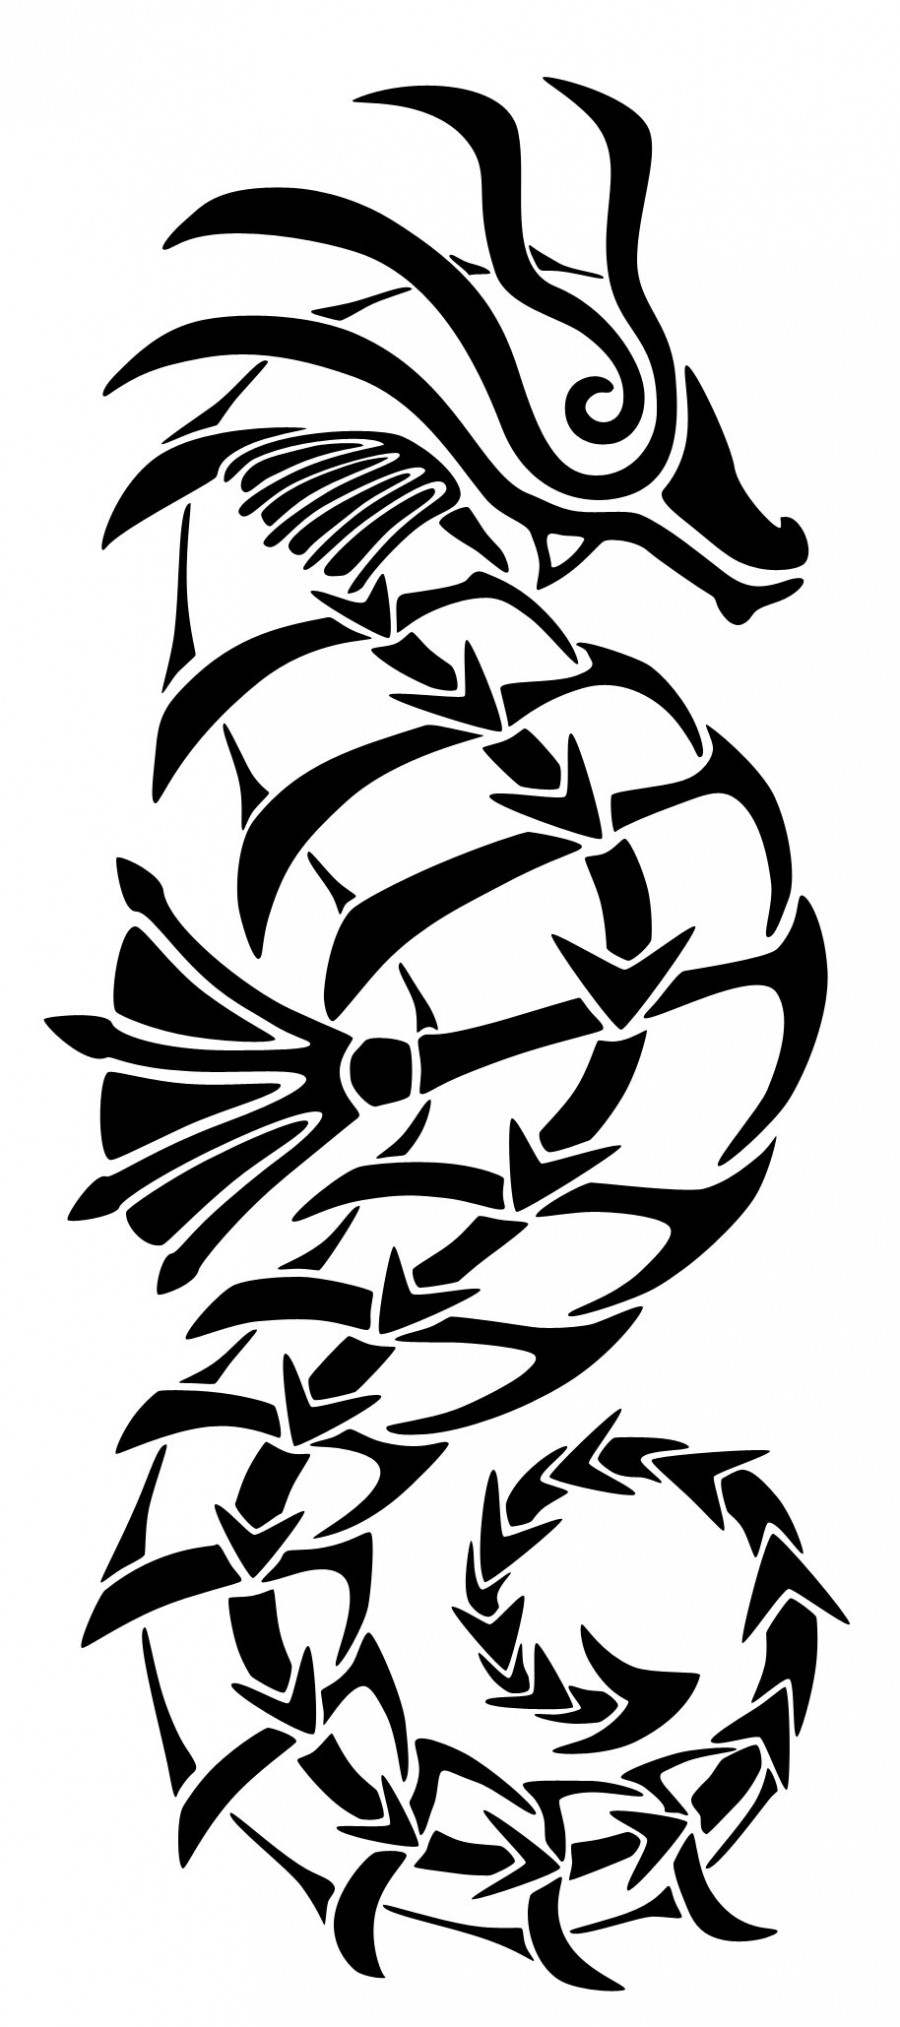 659a47074 Tribal Tattoo Seahorse Ideas - | TattooMagz › Tattoo Designs / Ink ...